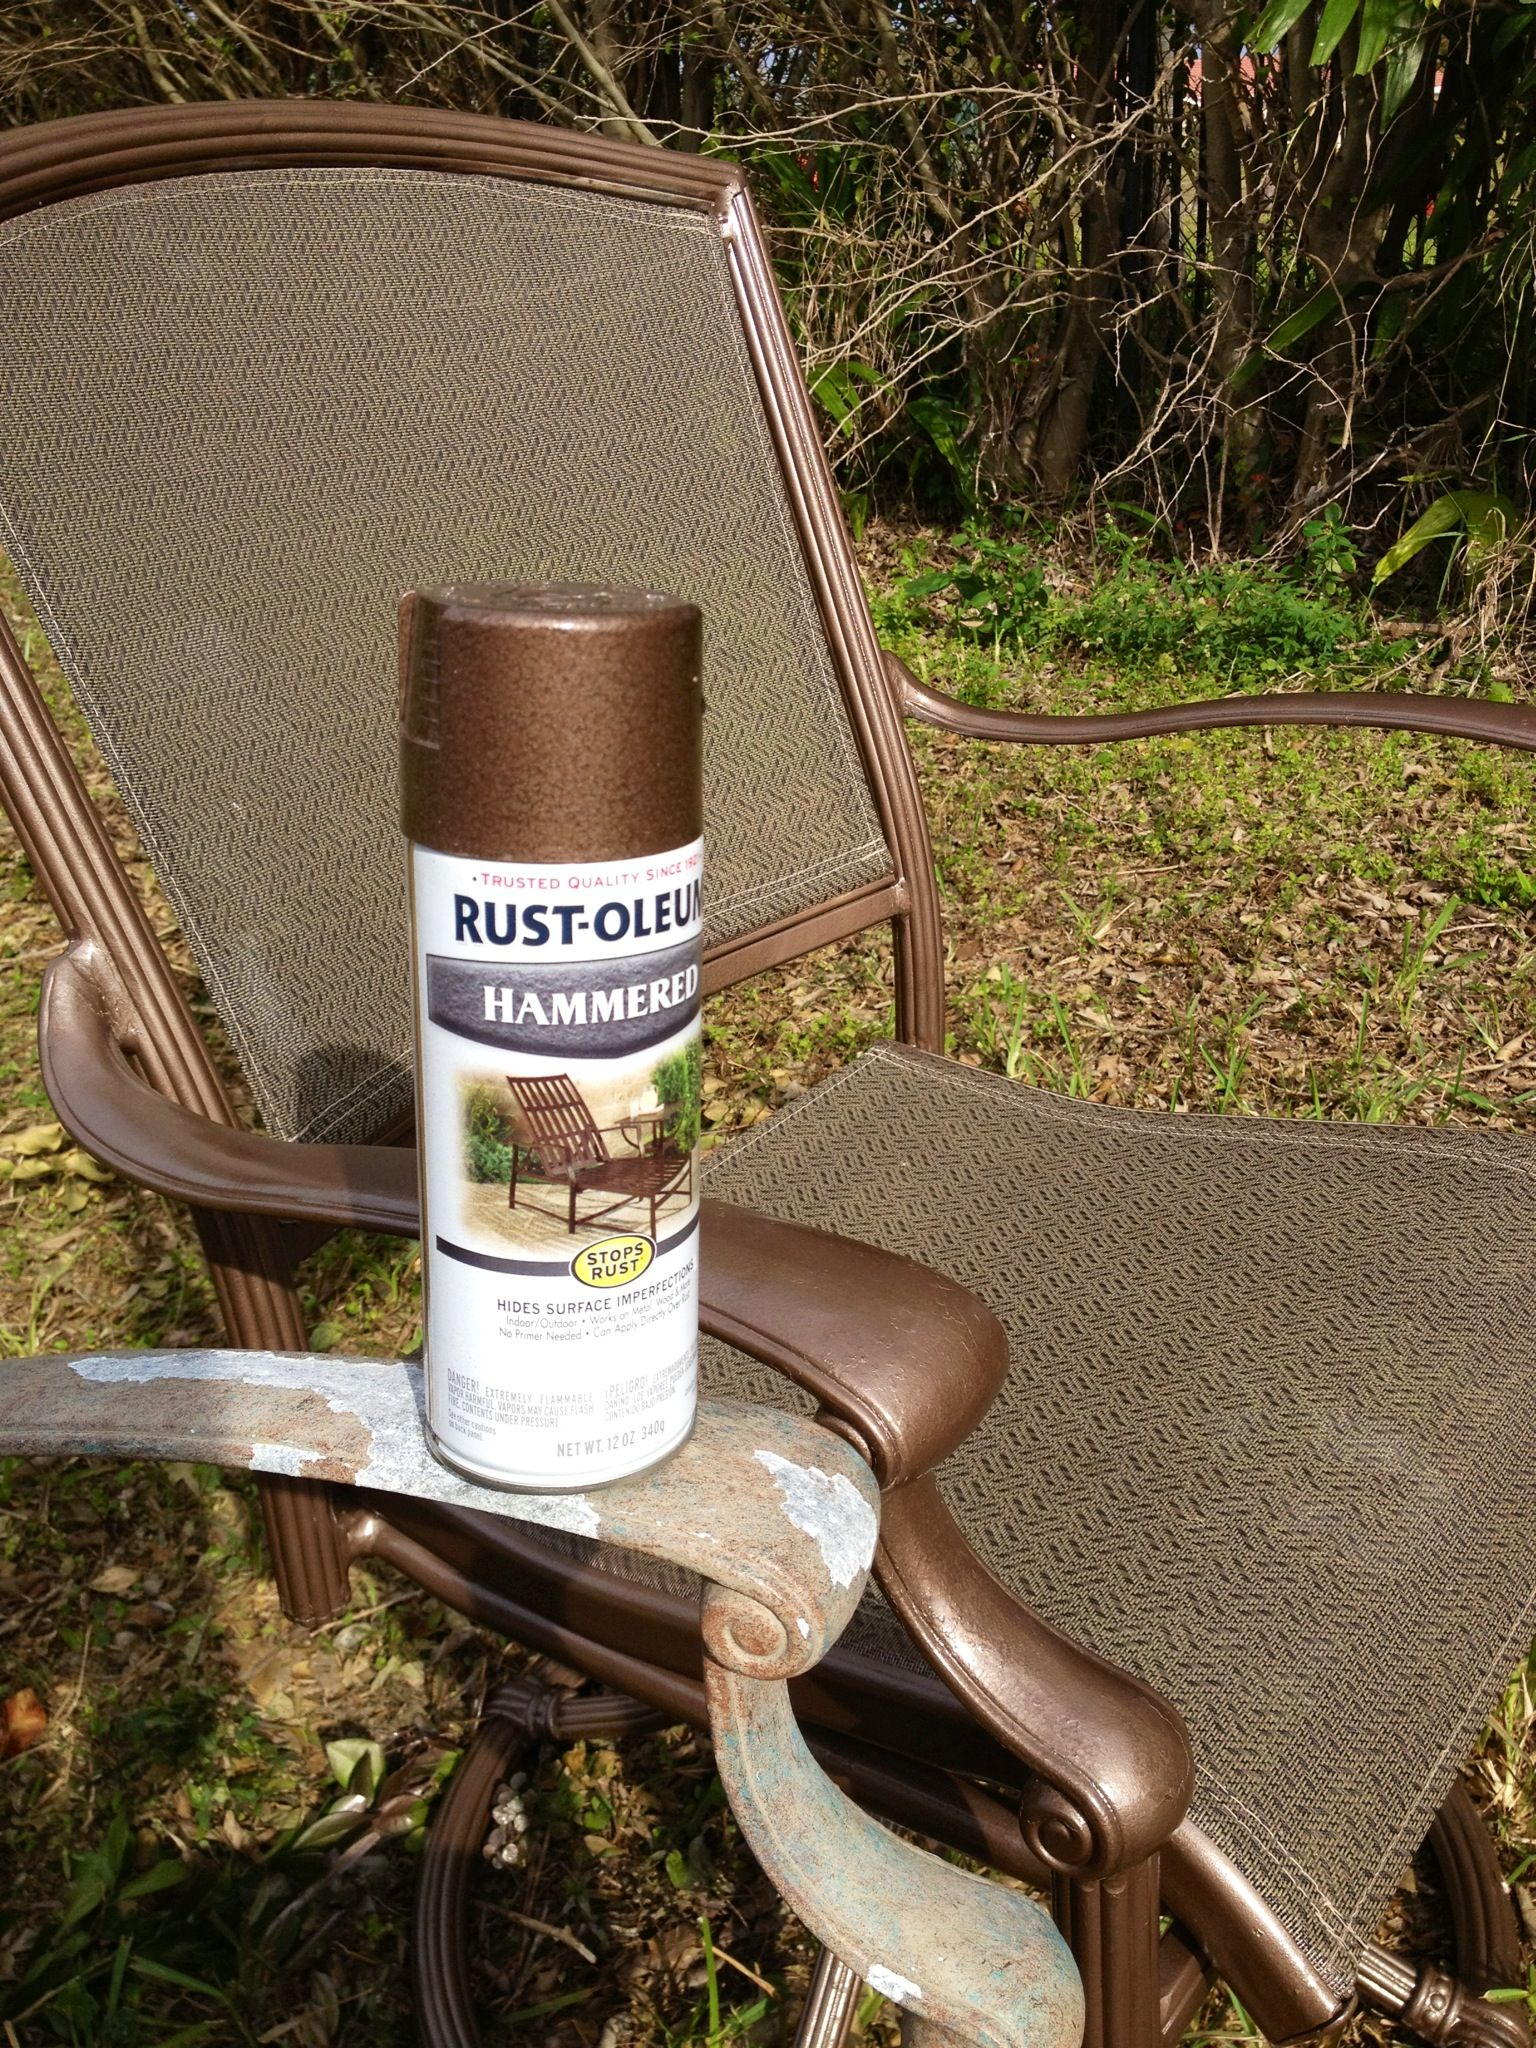 Rustoleum Hammered Metallic Spray Paint For My Upcycled Intended For 2 Person Hammered Bronze Iron Outdoor Swings (Image 24 of 25)